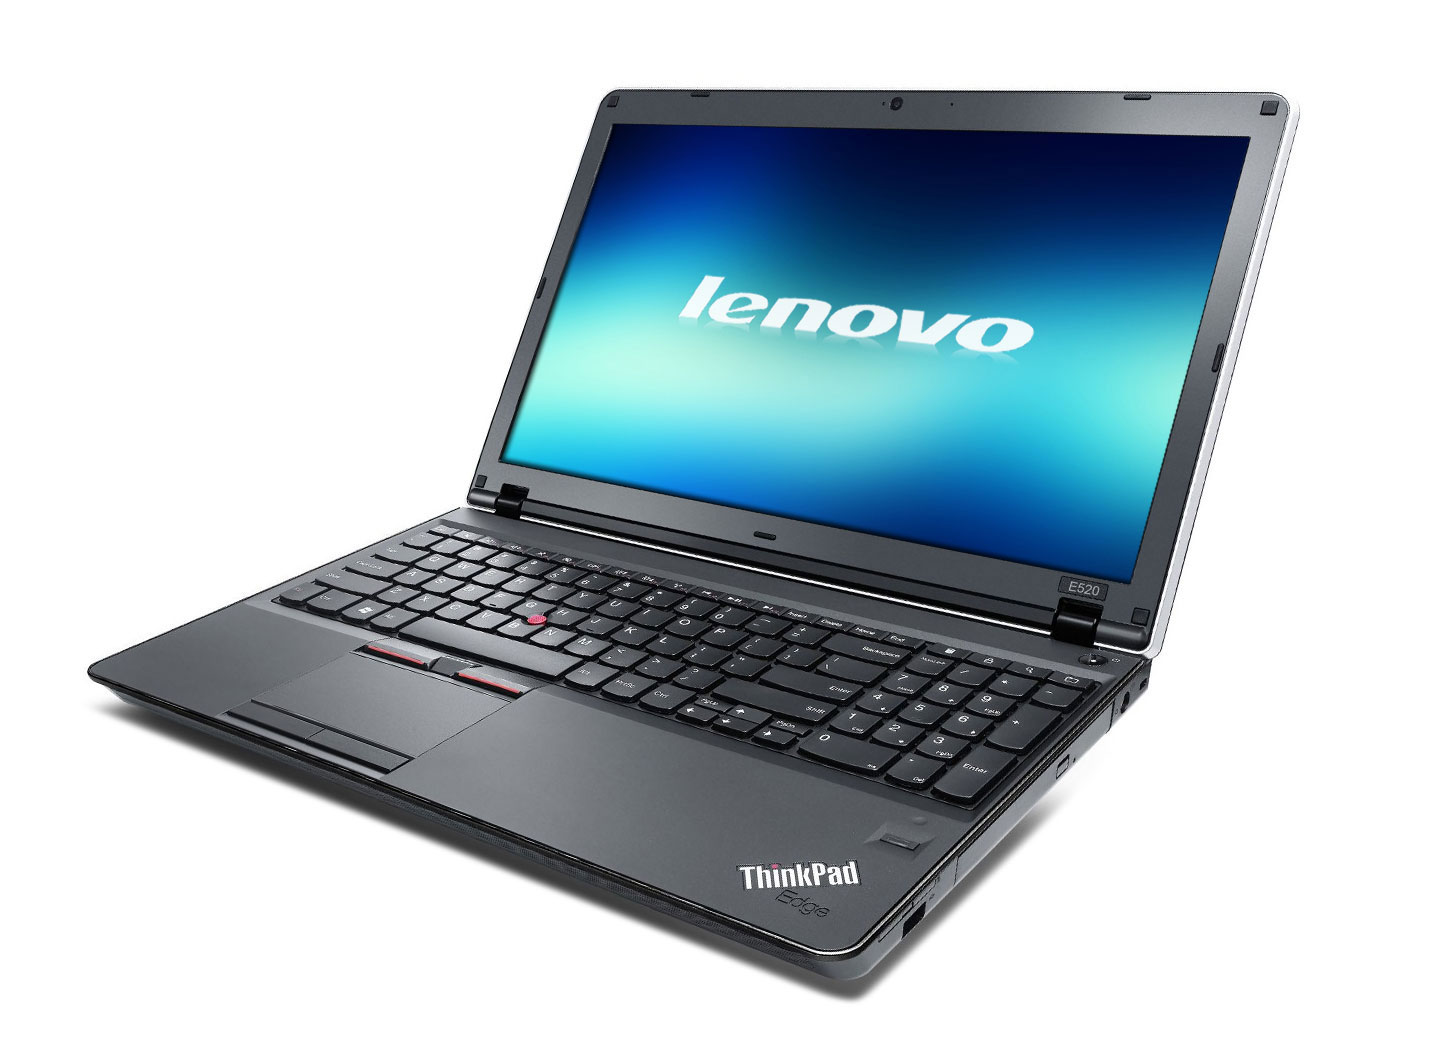 Lenovo Thinkpad Edge E520 - Laptop -           Lenovo Laptop Thinkpad